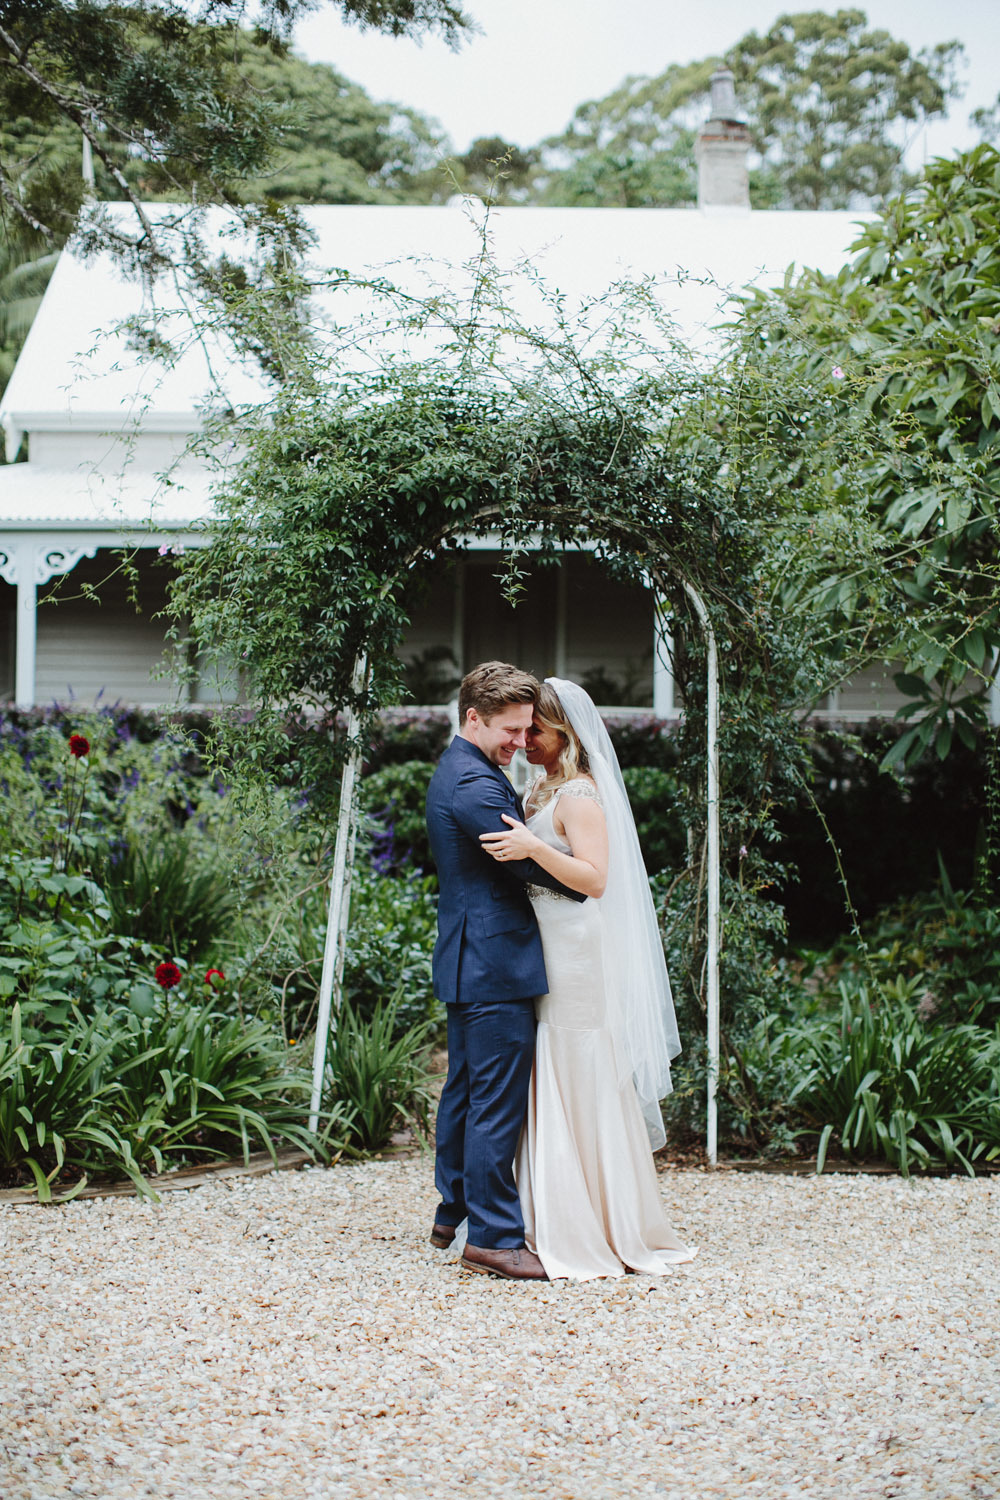 justin_aaron_byron_bay_eureka_wedding_photographer-63.jpg